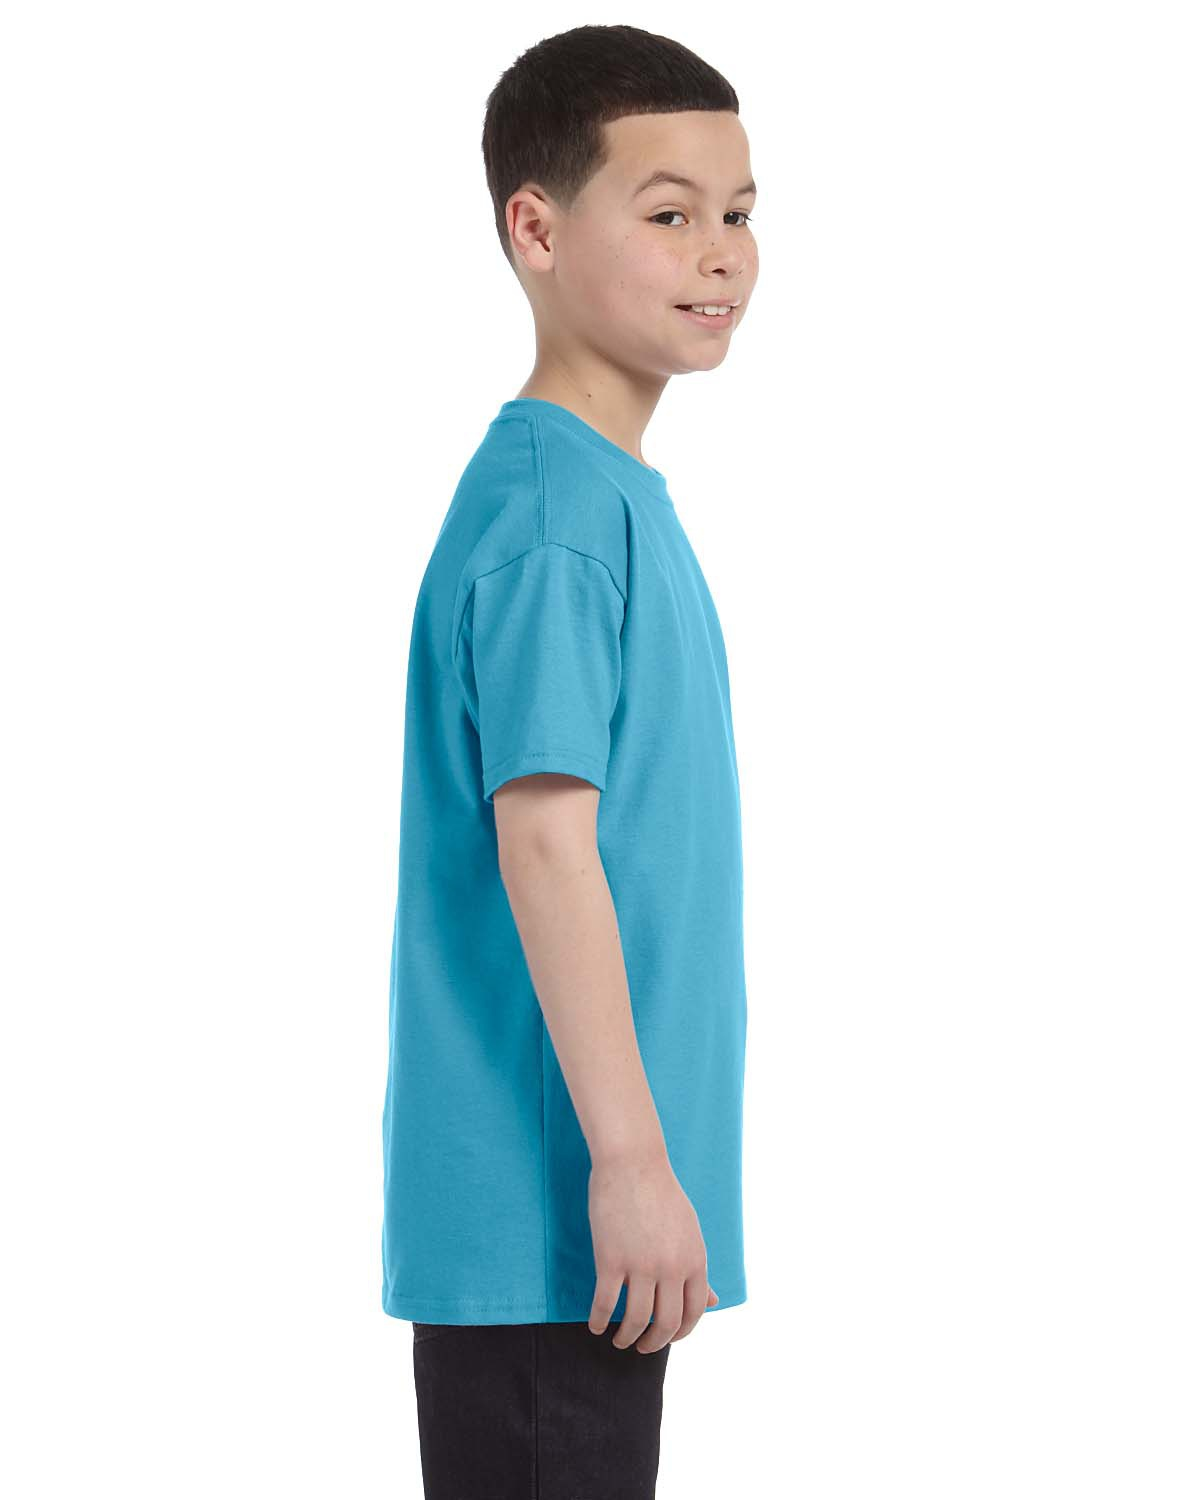 'Jerzees 29B Youth Dri-Power Active 50/50 Cotton/Poly T-Shirt'